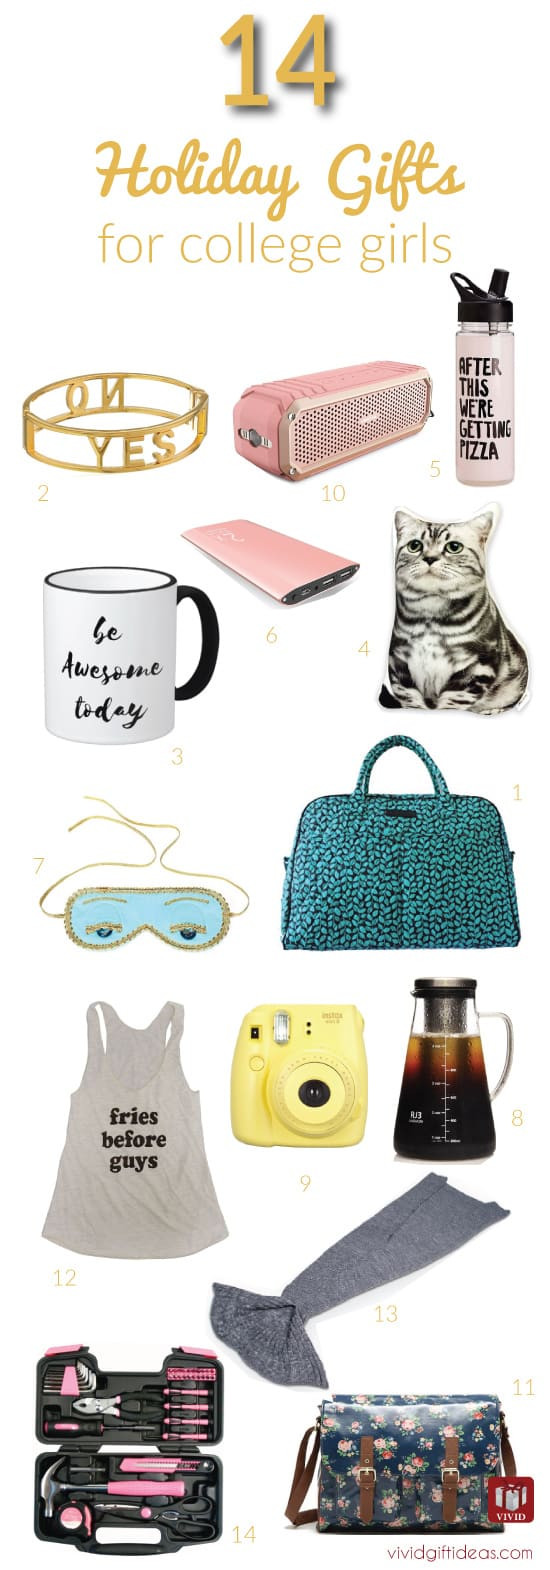 Gift Ideas For Girls  14 Great Christmas Gift Ideas for College Girls Vivid s